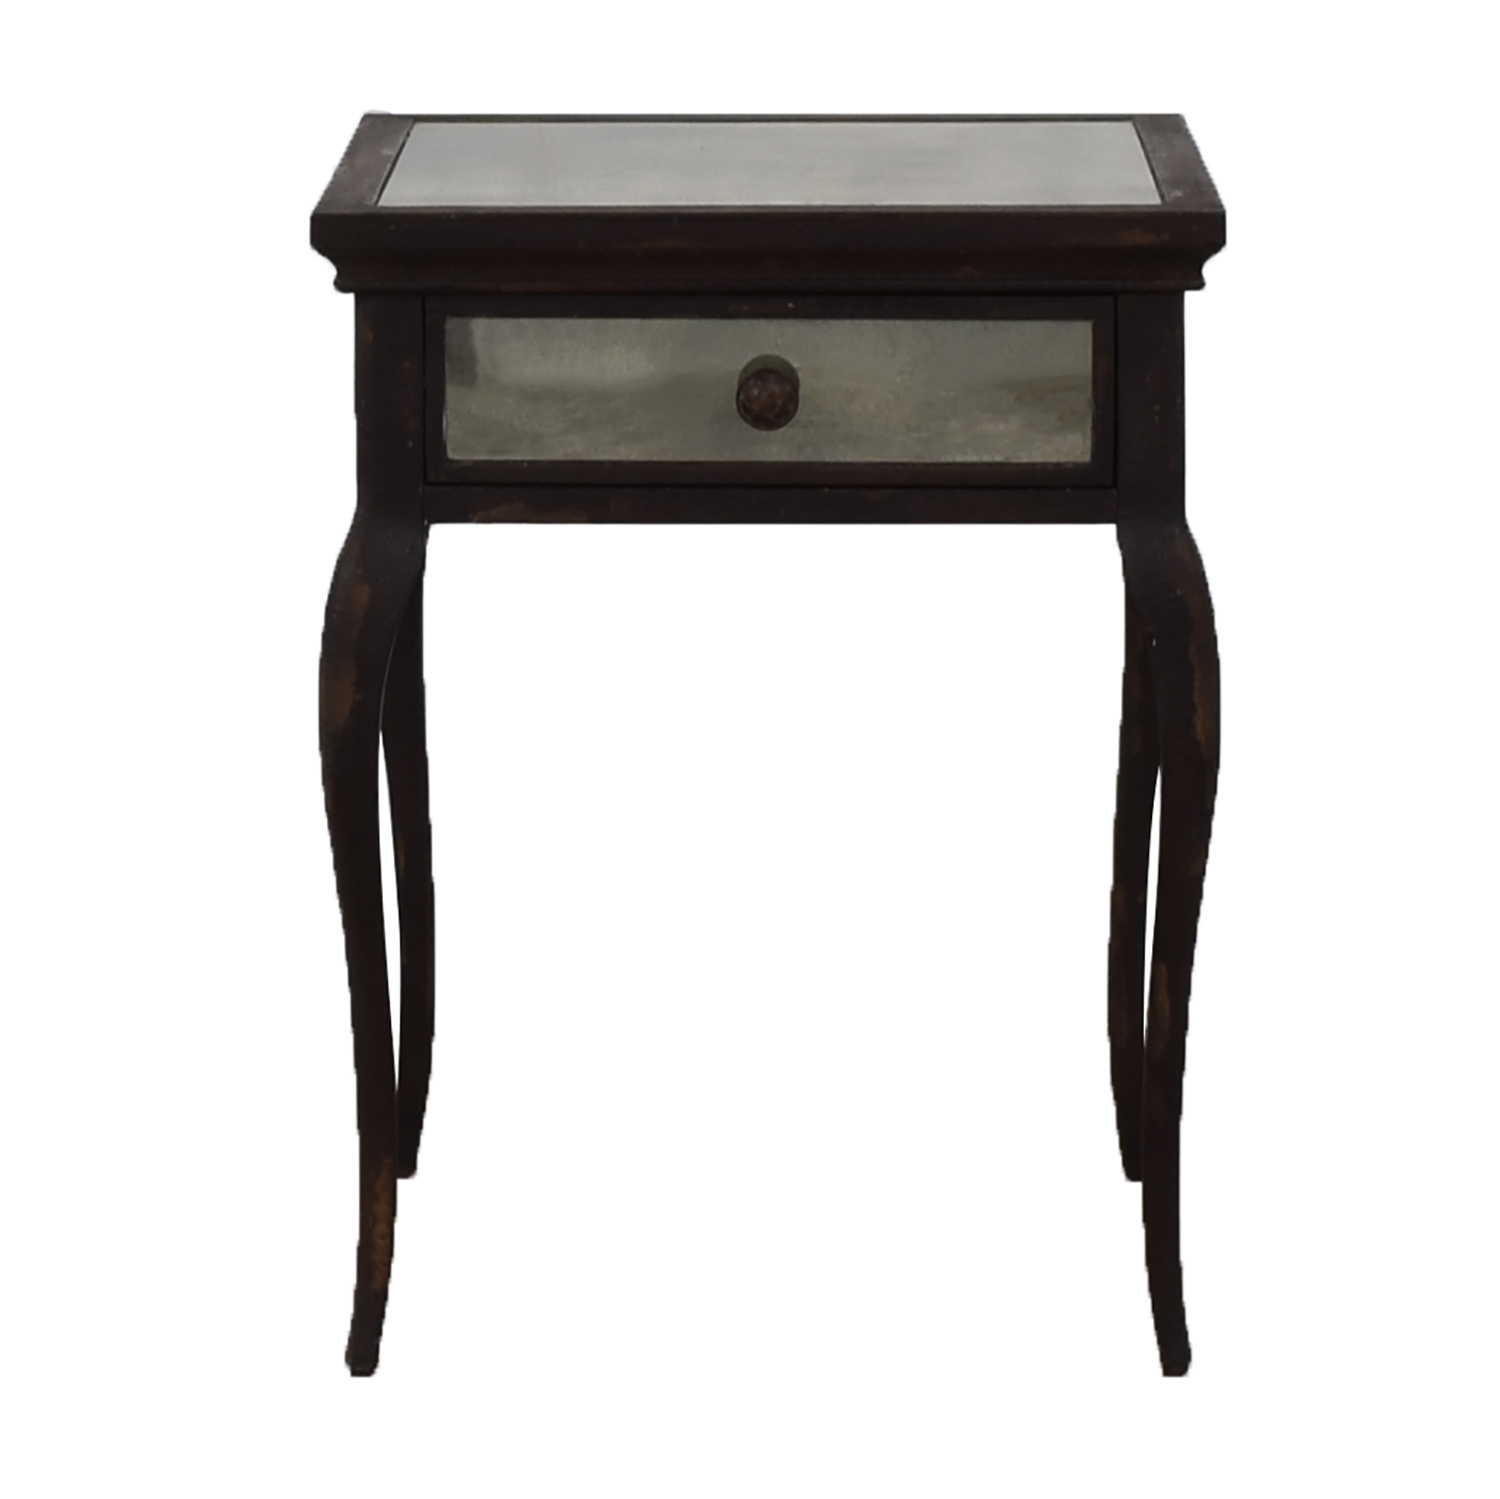 Uttermost Uttermost Smoked Mirror and Metal End Table with One Drawer nj